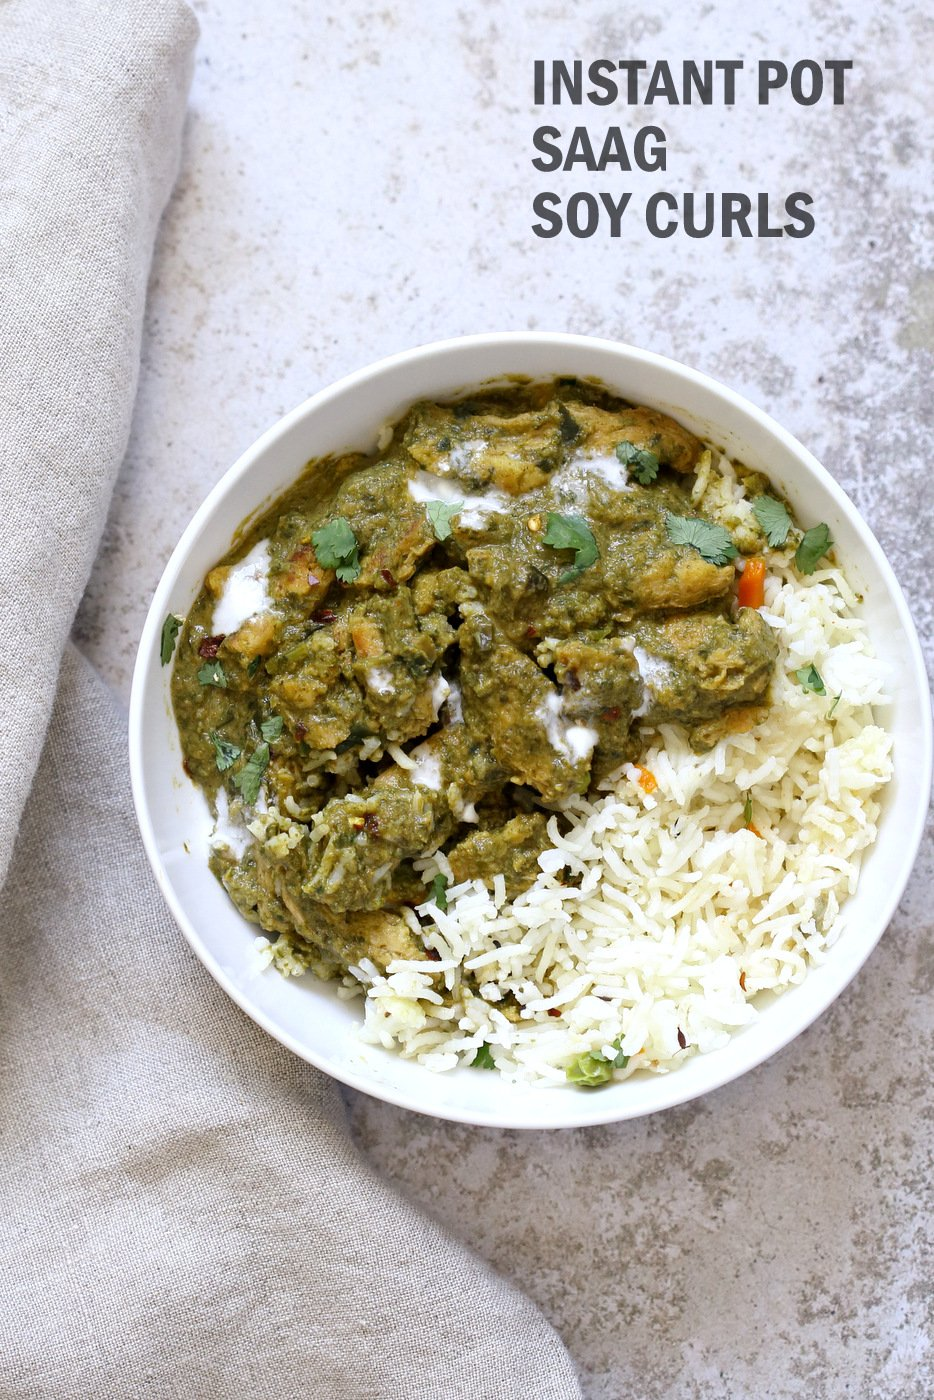 Instant Pot Vegan Chicken Saag ? Soy Curls in Spinach Sauce